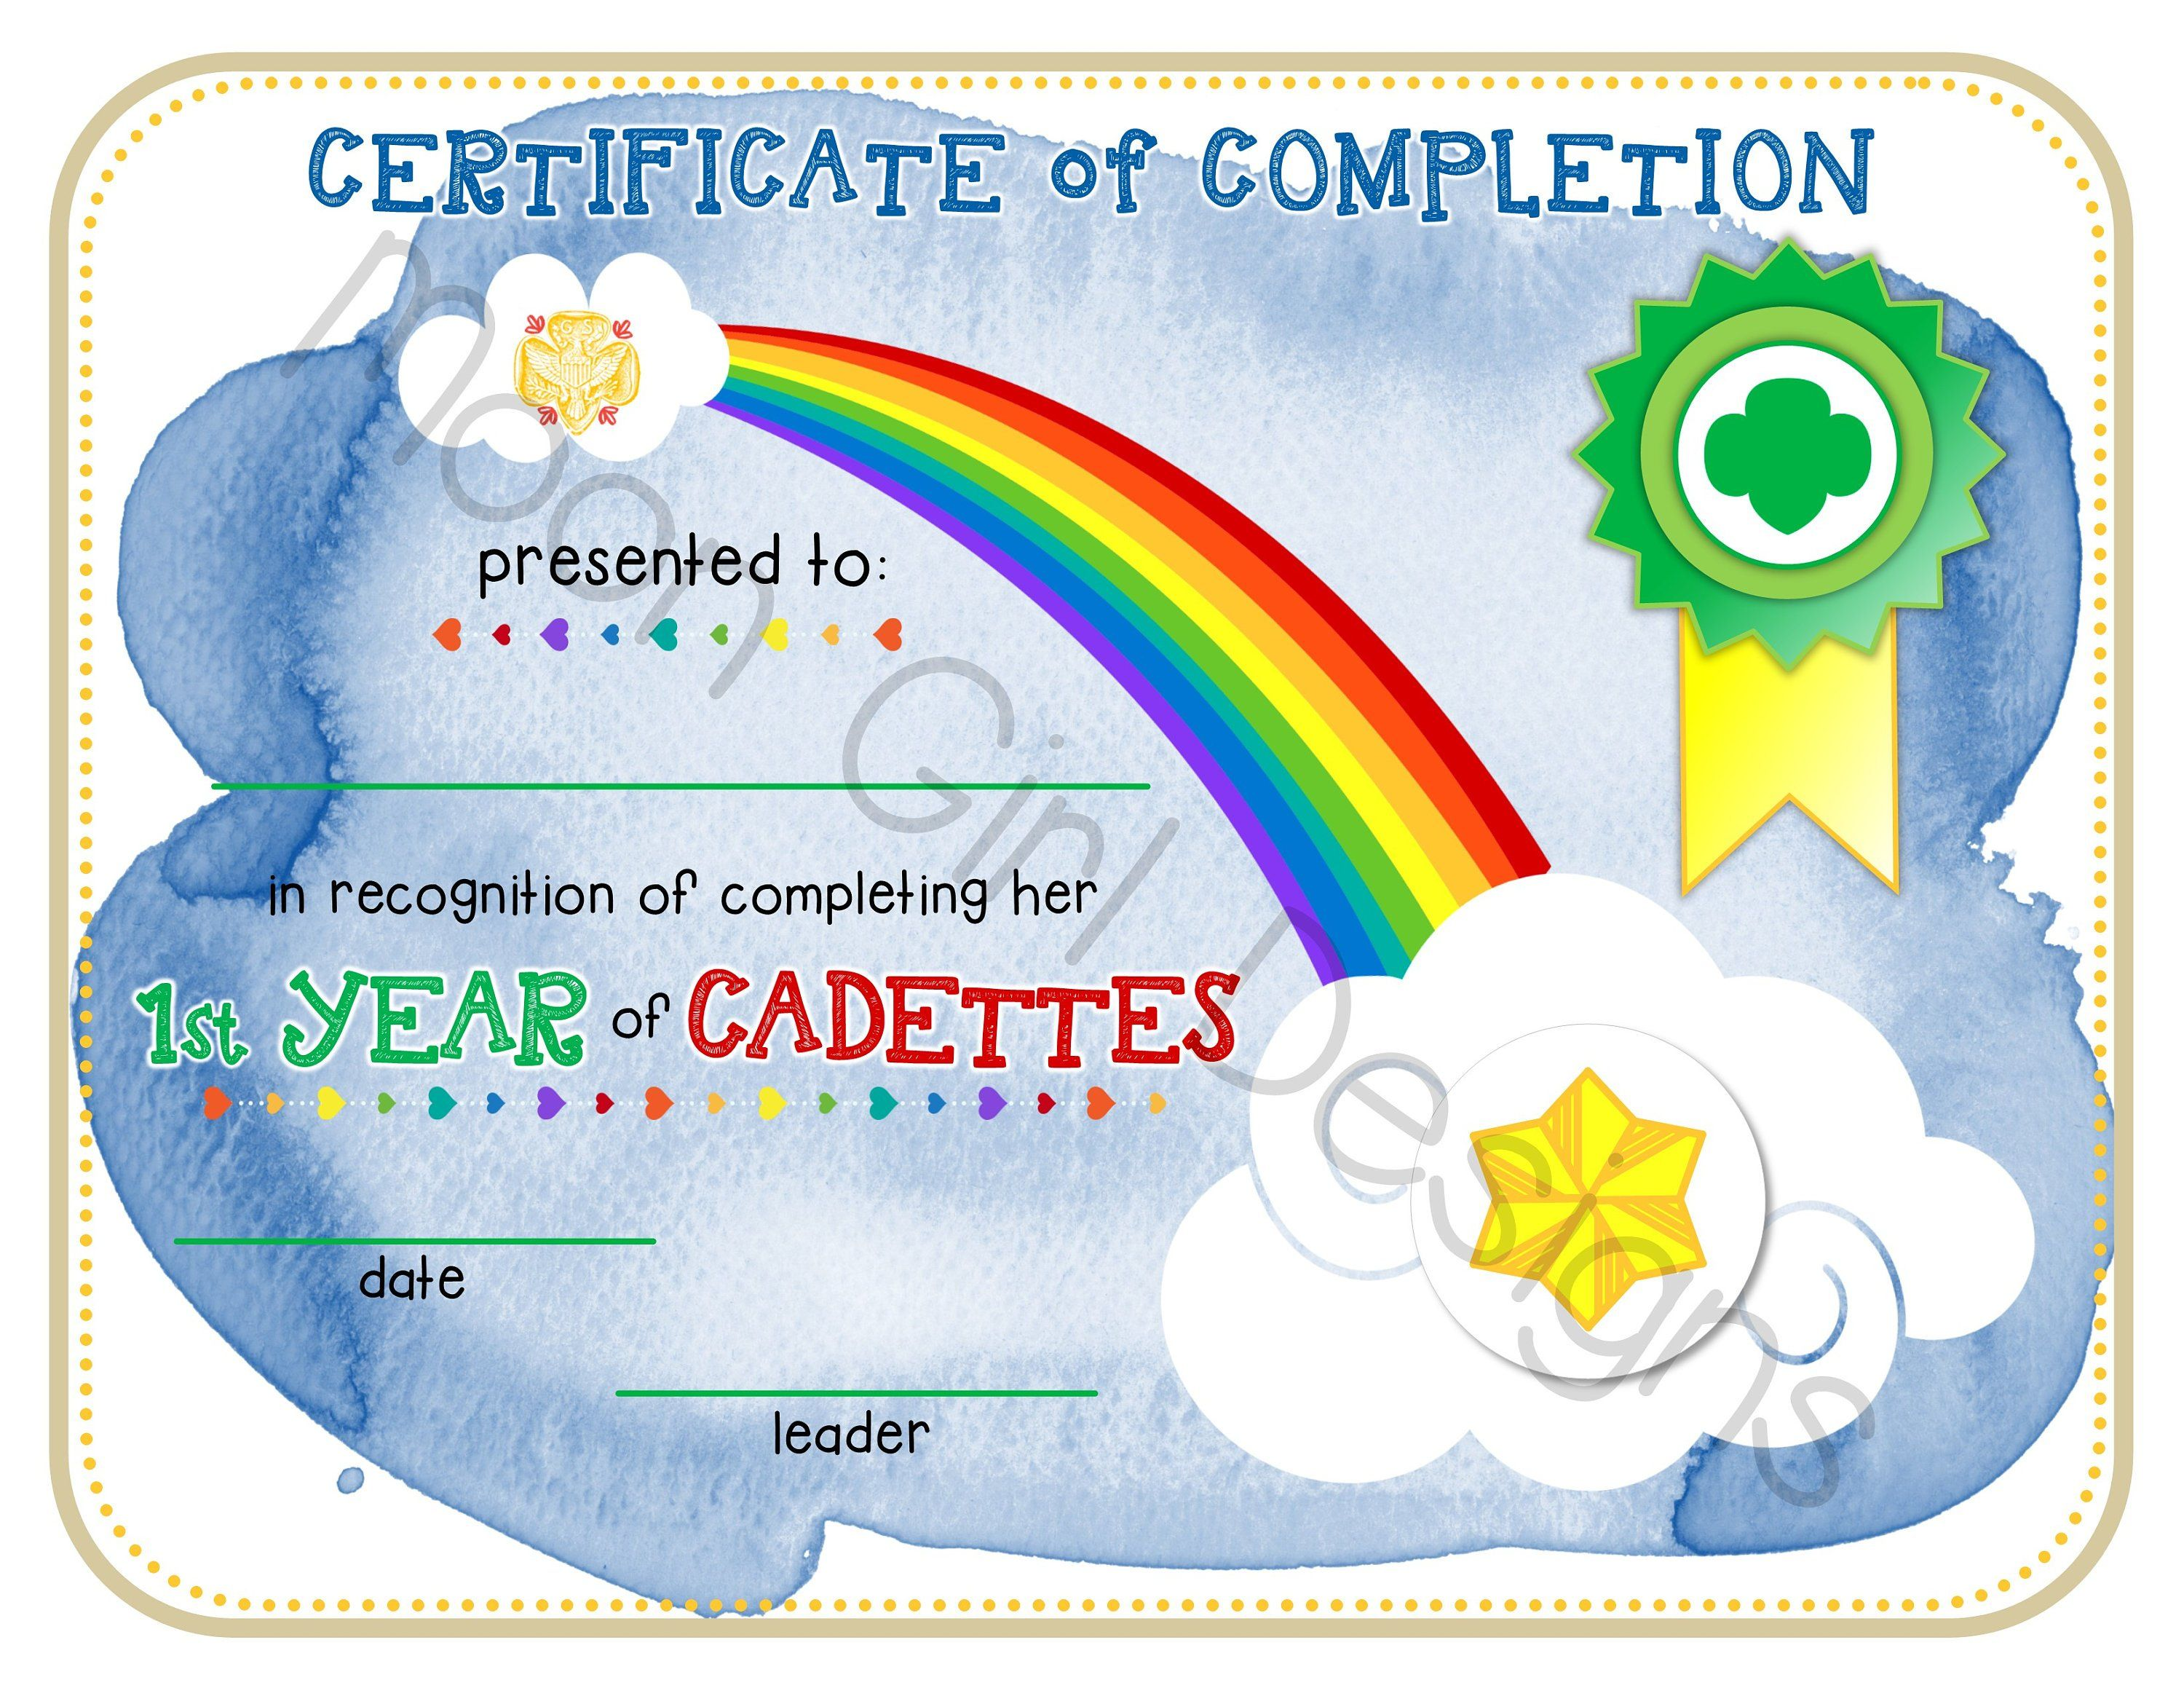 Cadette Girl Scout 1st Year Completion Certificate